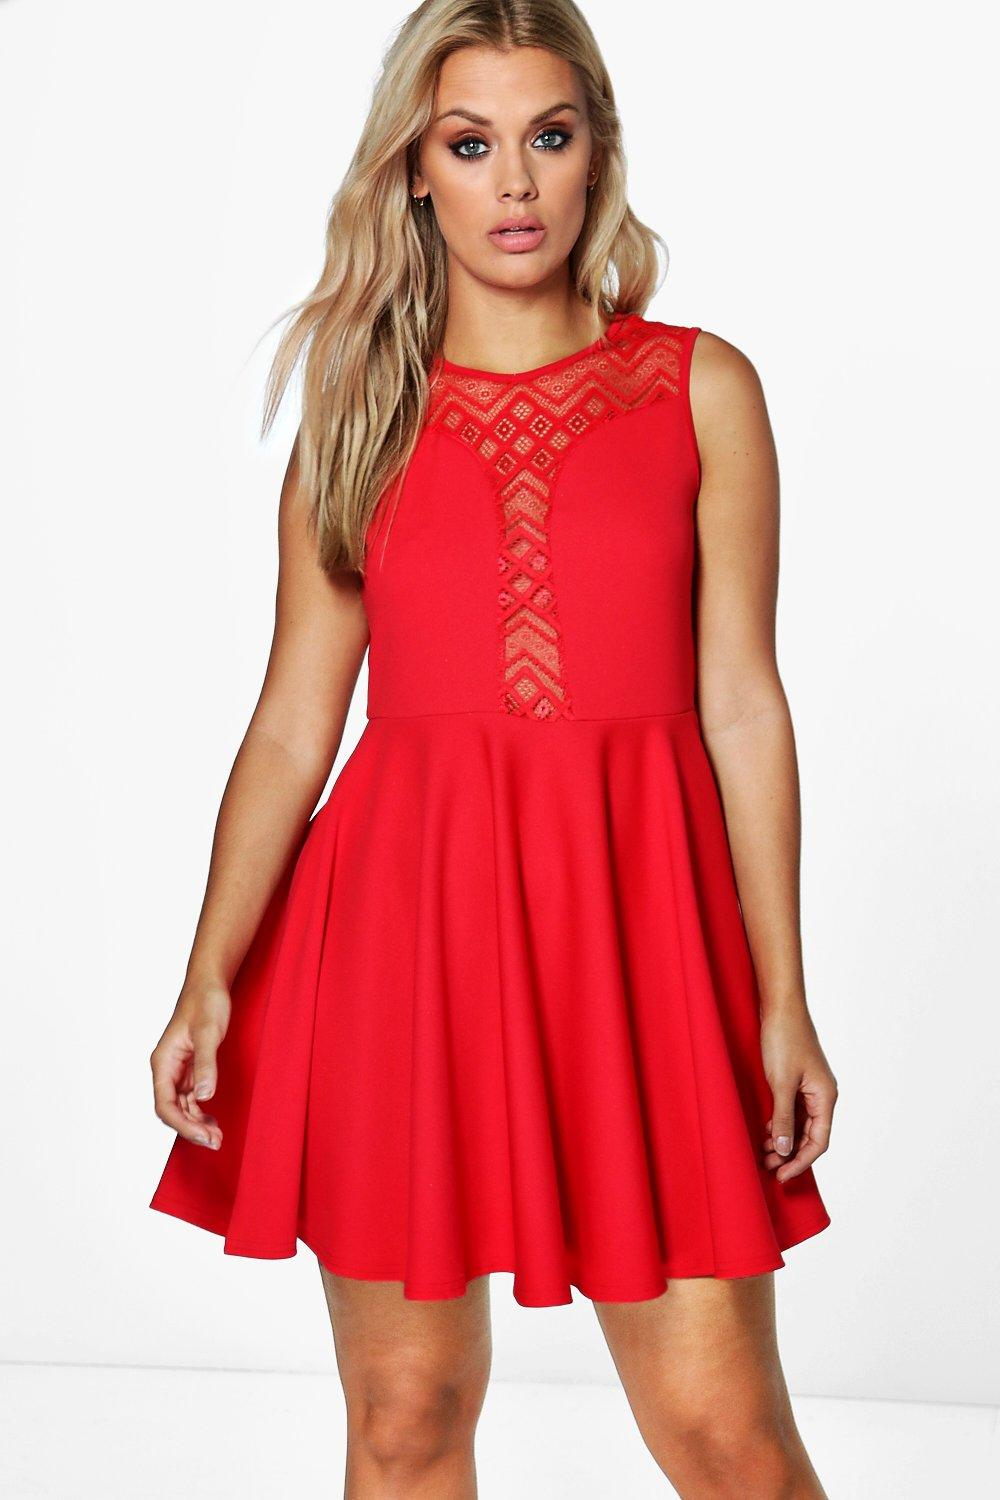 Plus Tilly Lace Detail Skater Dress at boohoo.com